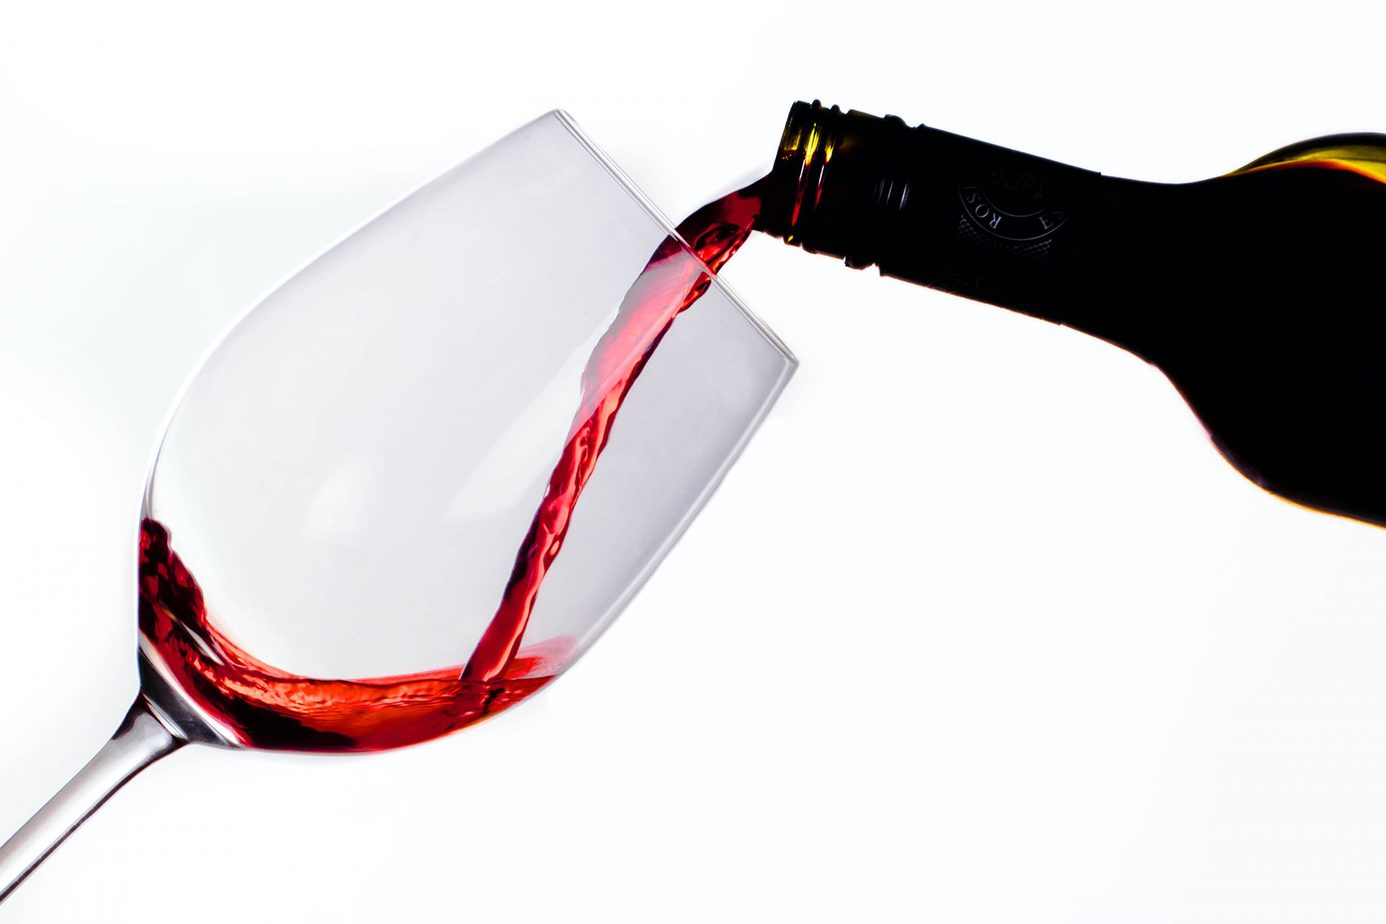 pouring red wine - shiraz cabernet featured image